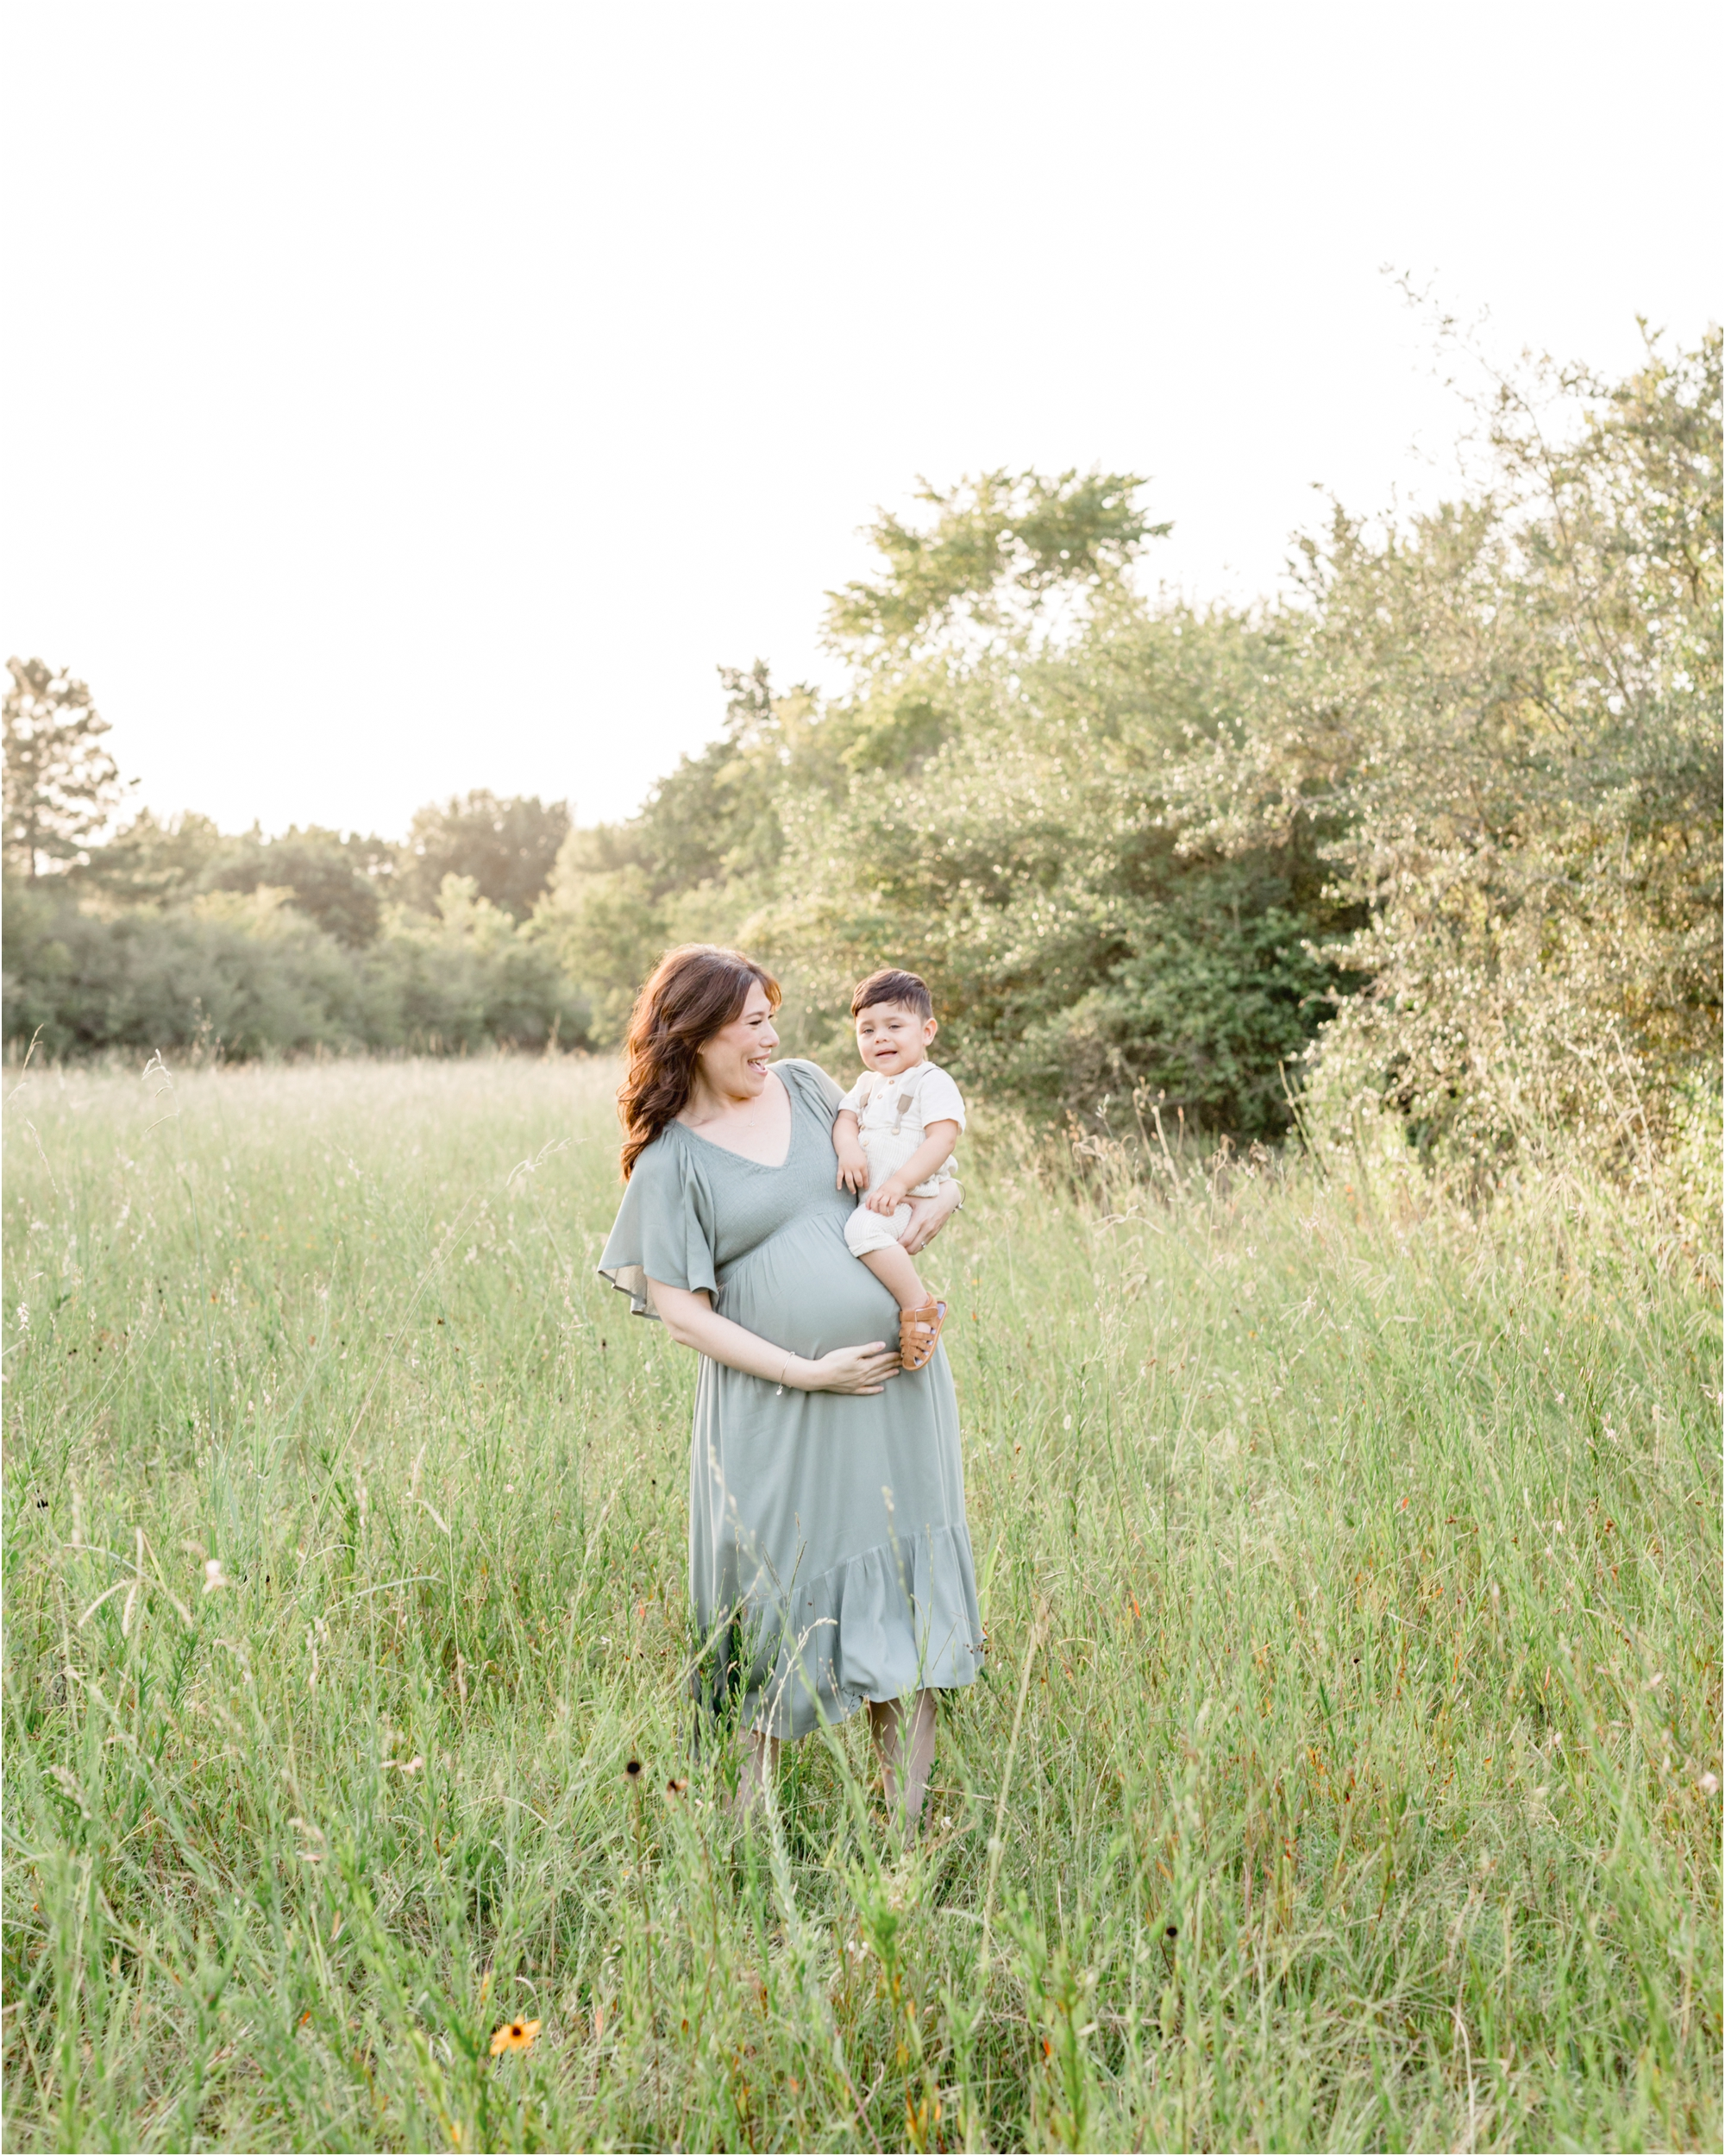 Mom talking through tall grass in field with toddler during maternity session with Lifetime of Clicks Photography.